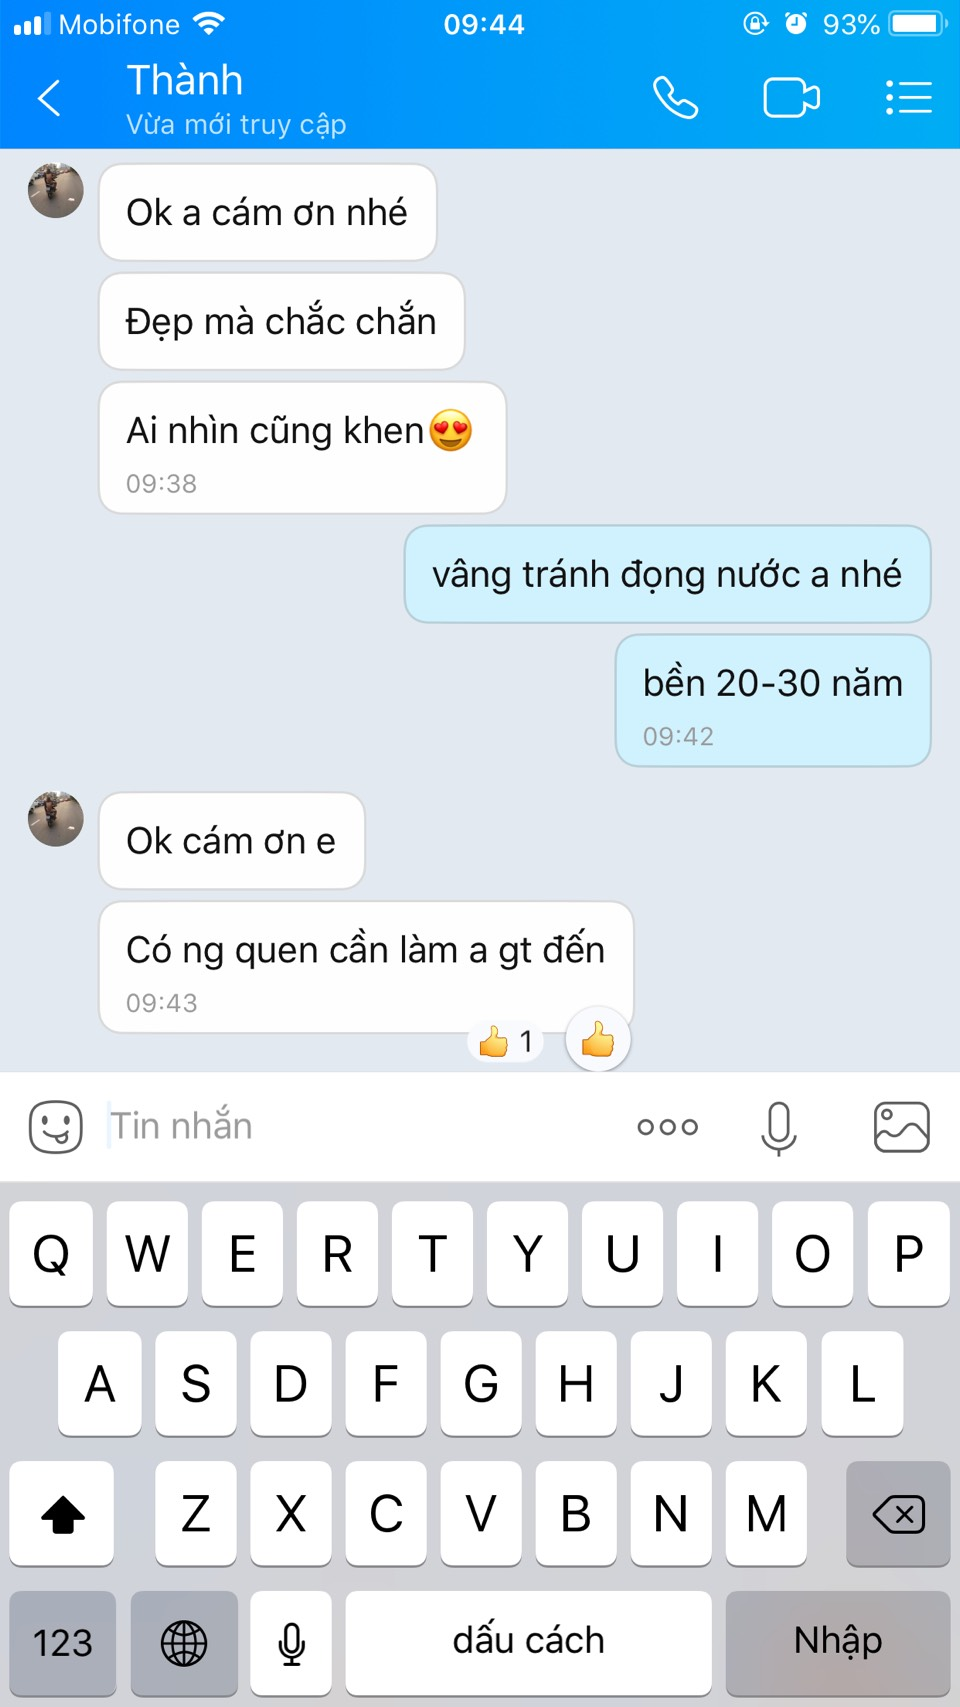 cam on anh thanh ung ho full phong cuoi tai le gia